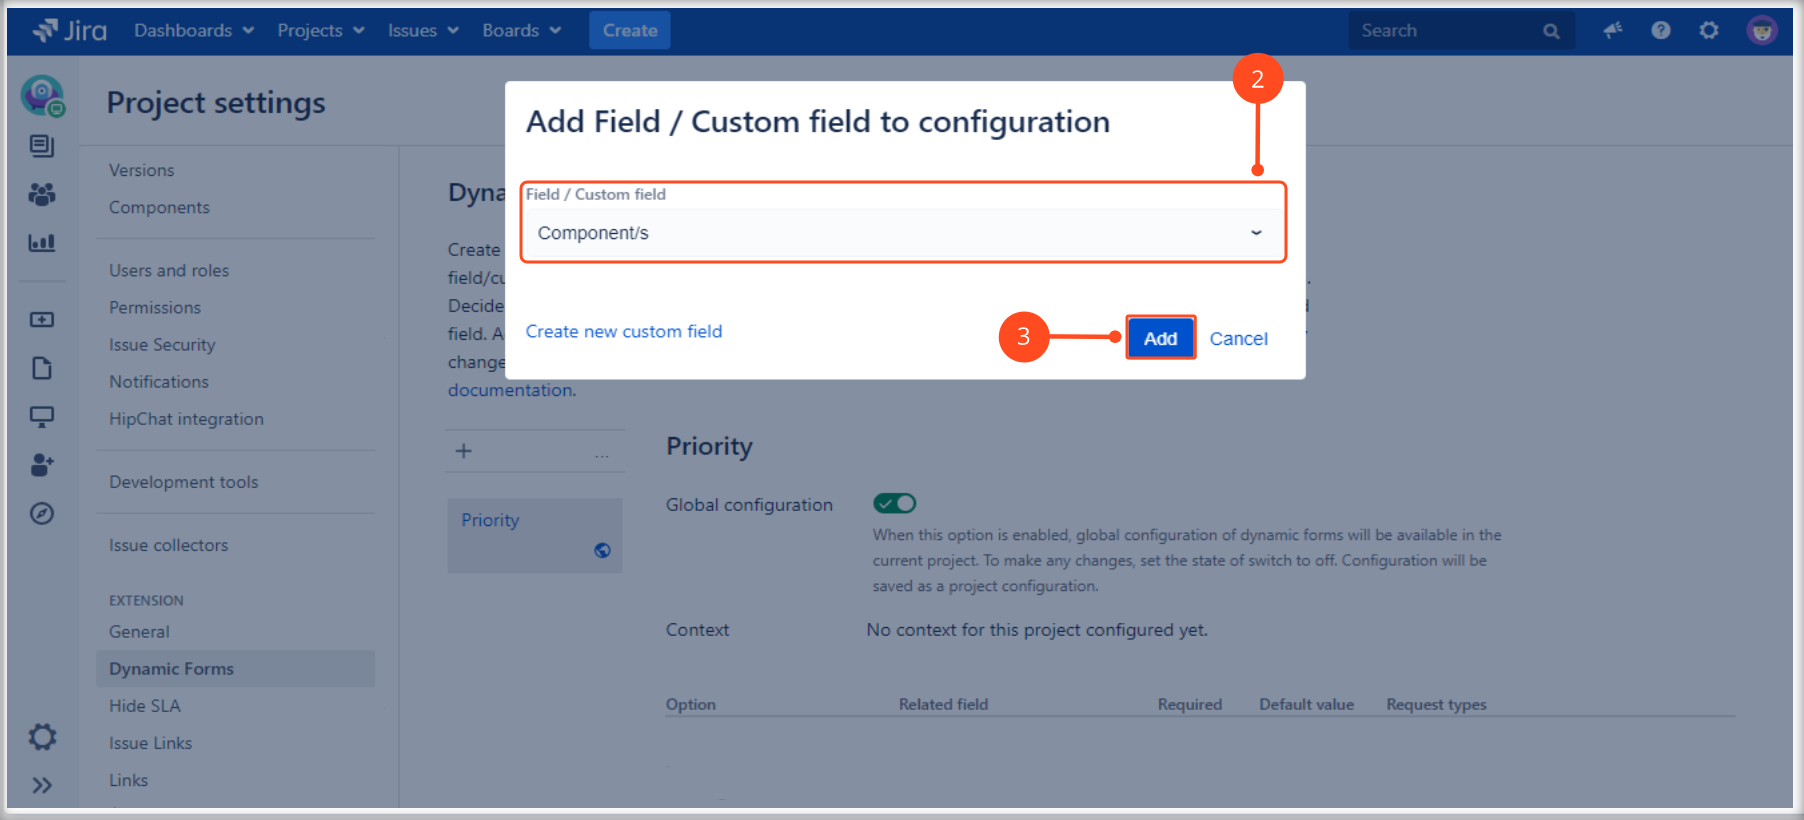 Creating a Dynamic Forms Project Configuration with Extension for Jira Service Management by adding a field/custom field